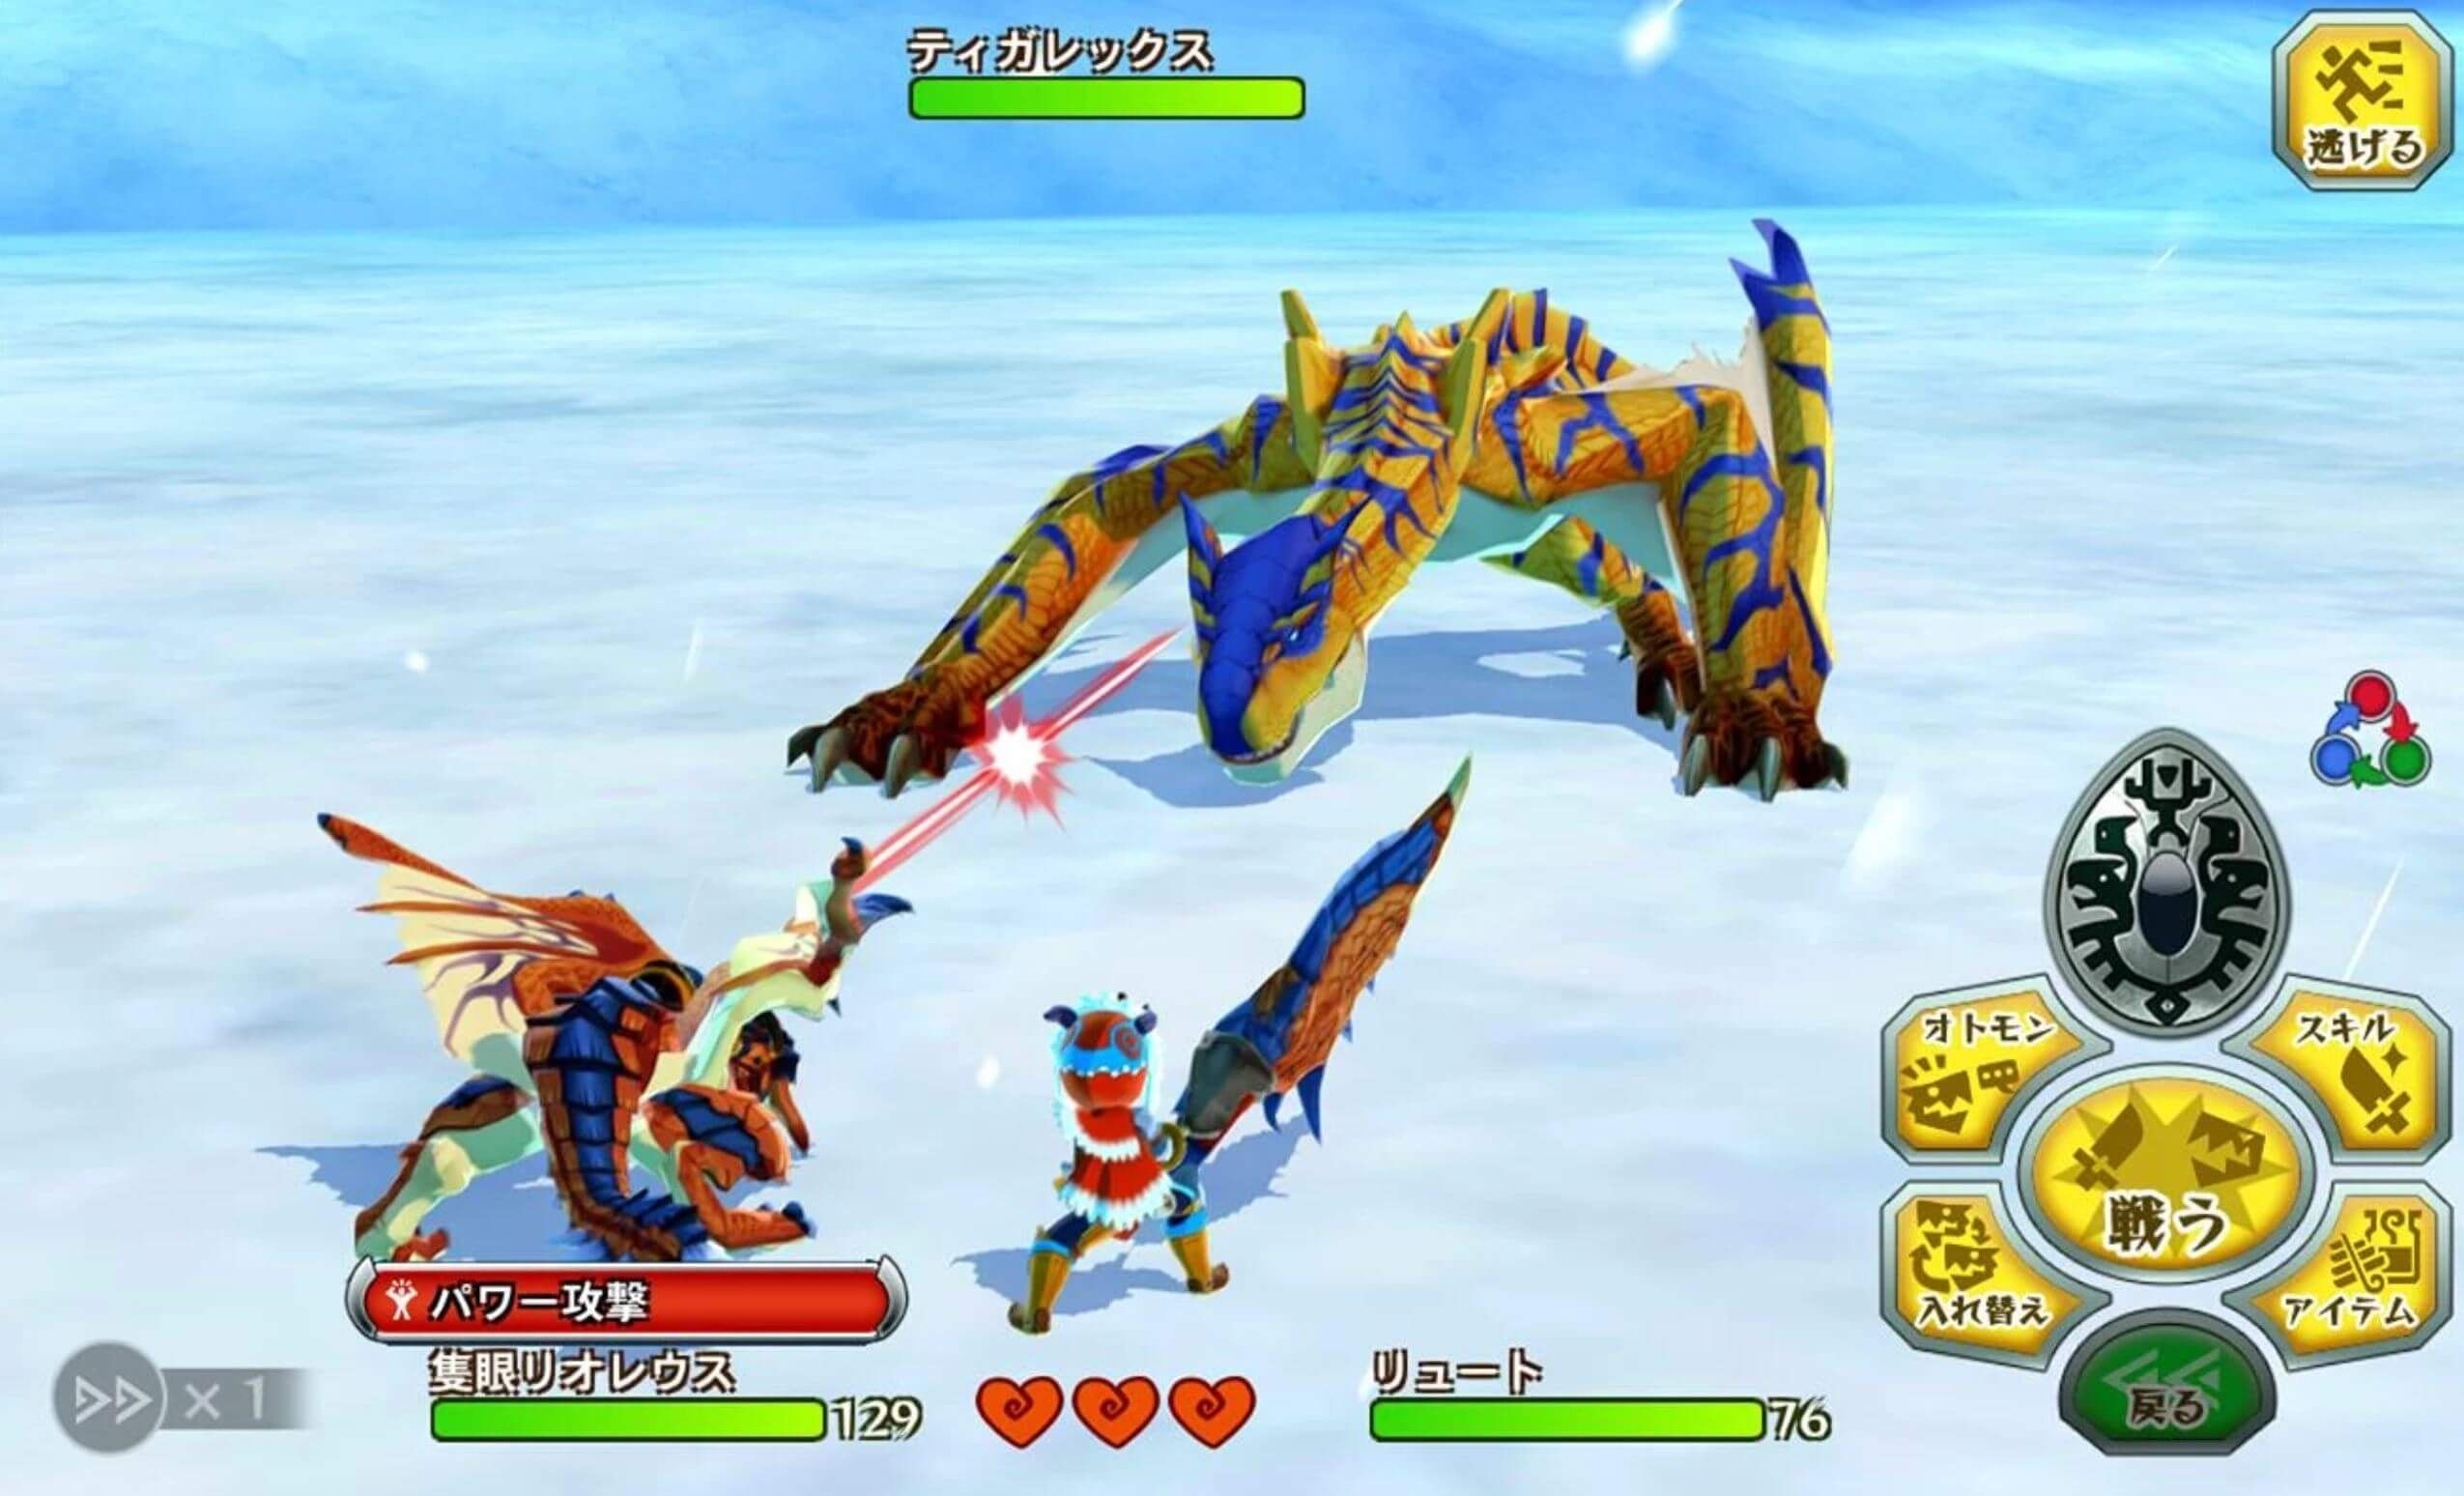 monster hunter stories suddenly ported from 3ds to android android google news